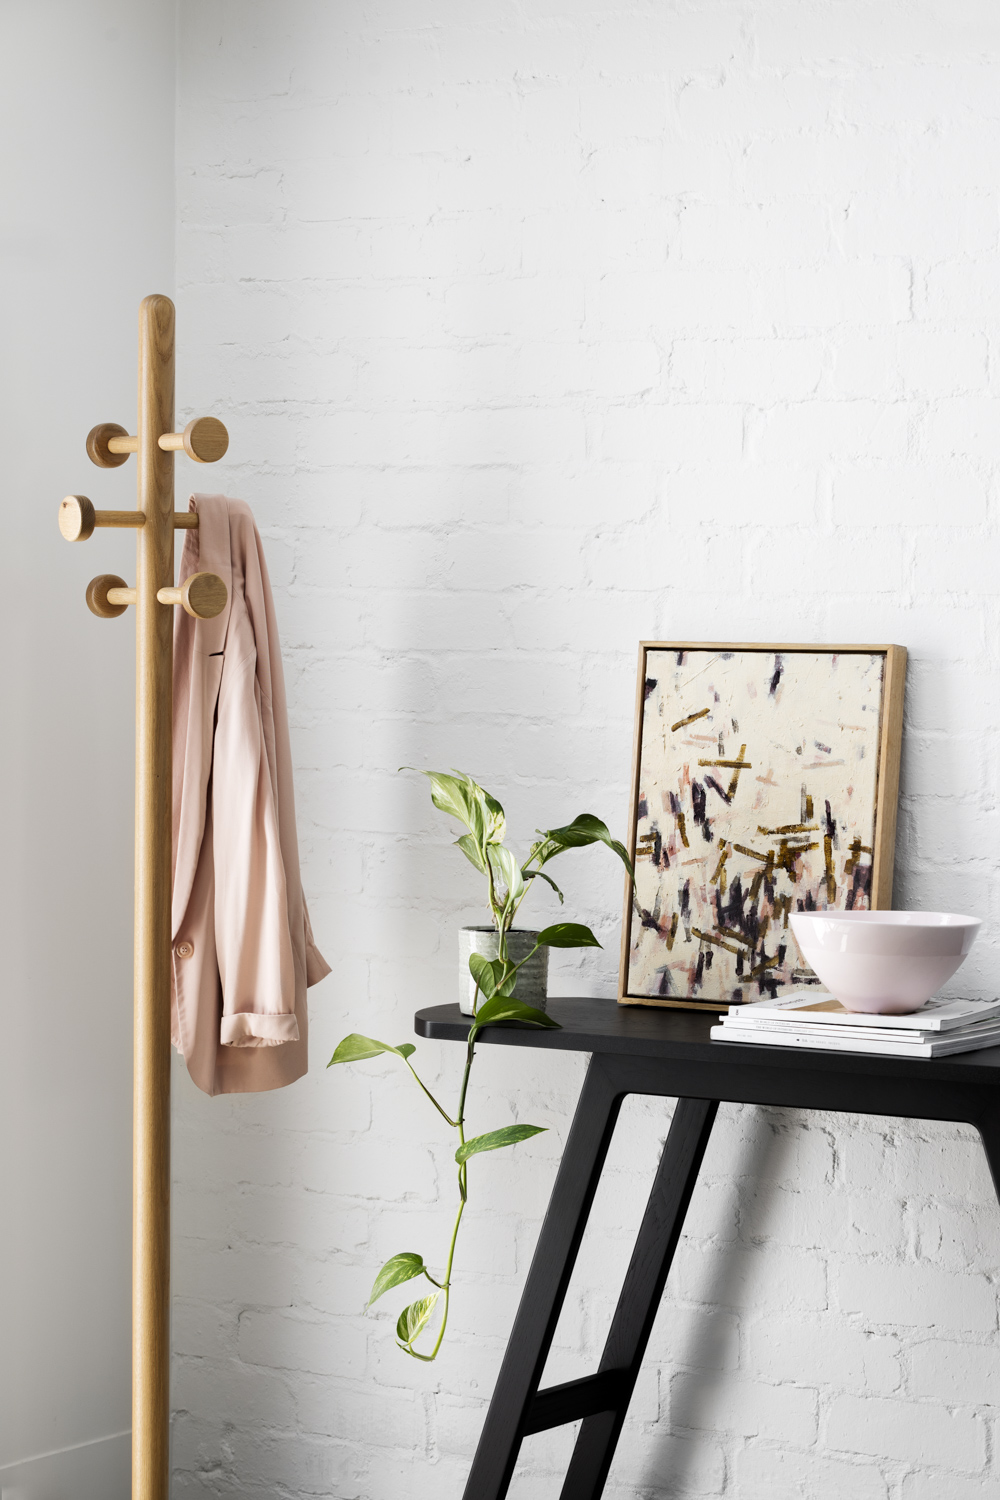 Elliot coat stand - Elliot's clean aesthetic and small footprint make it the perfect element to complete any interior.